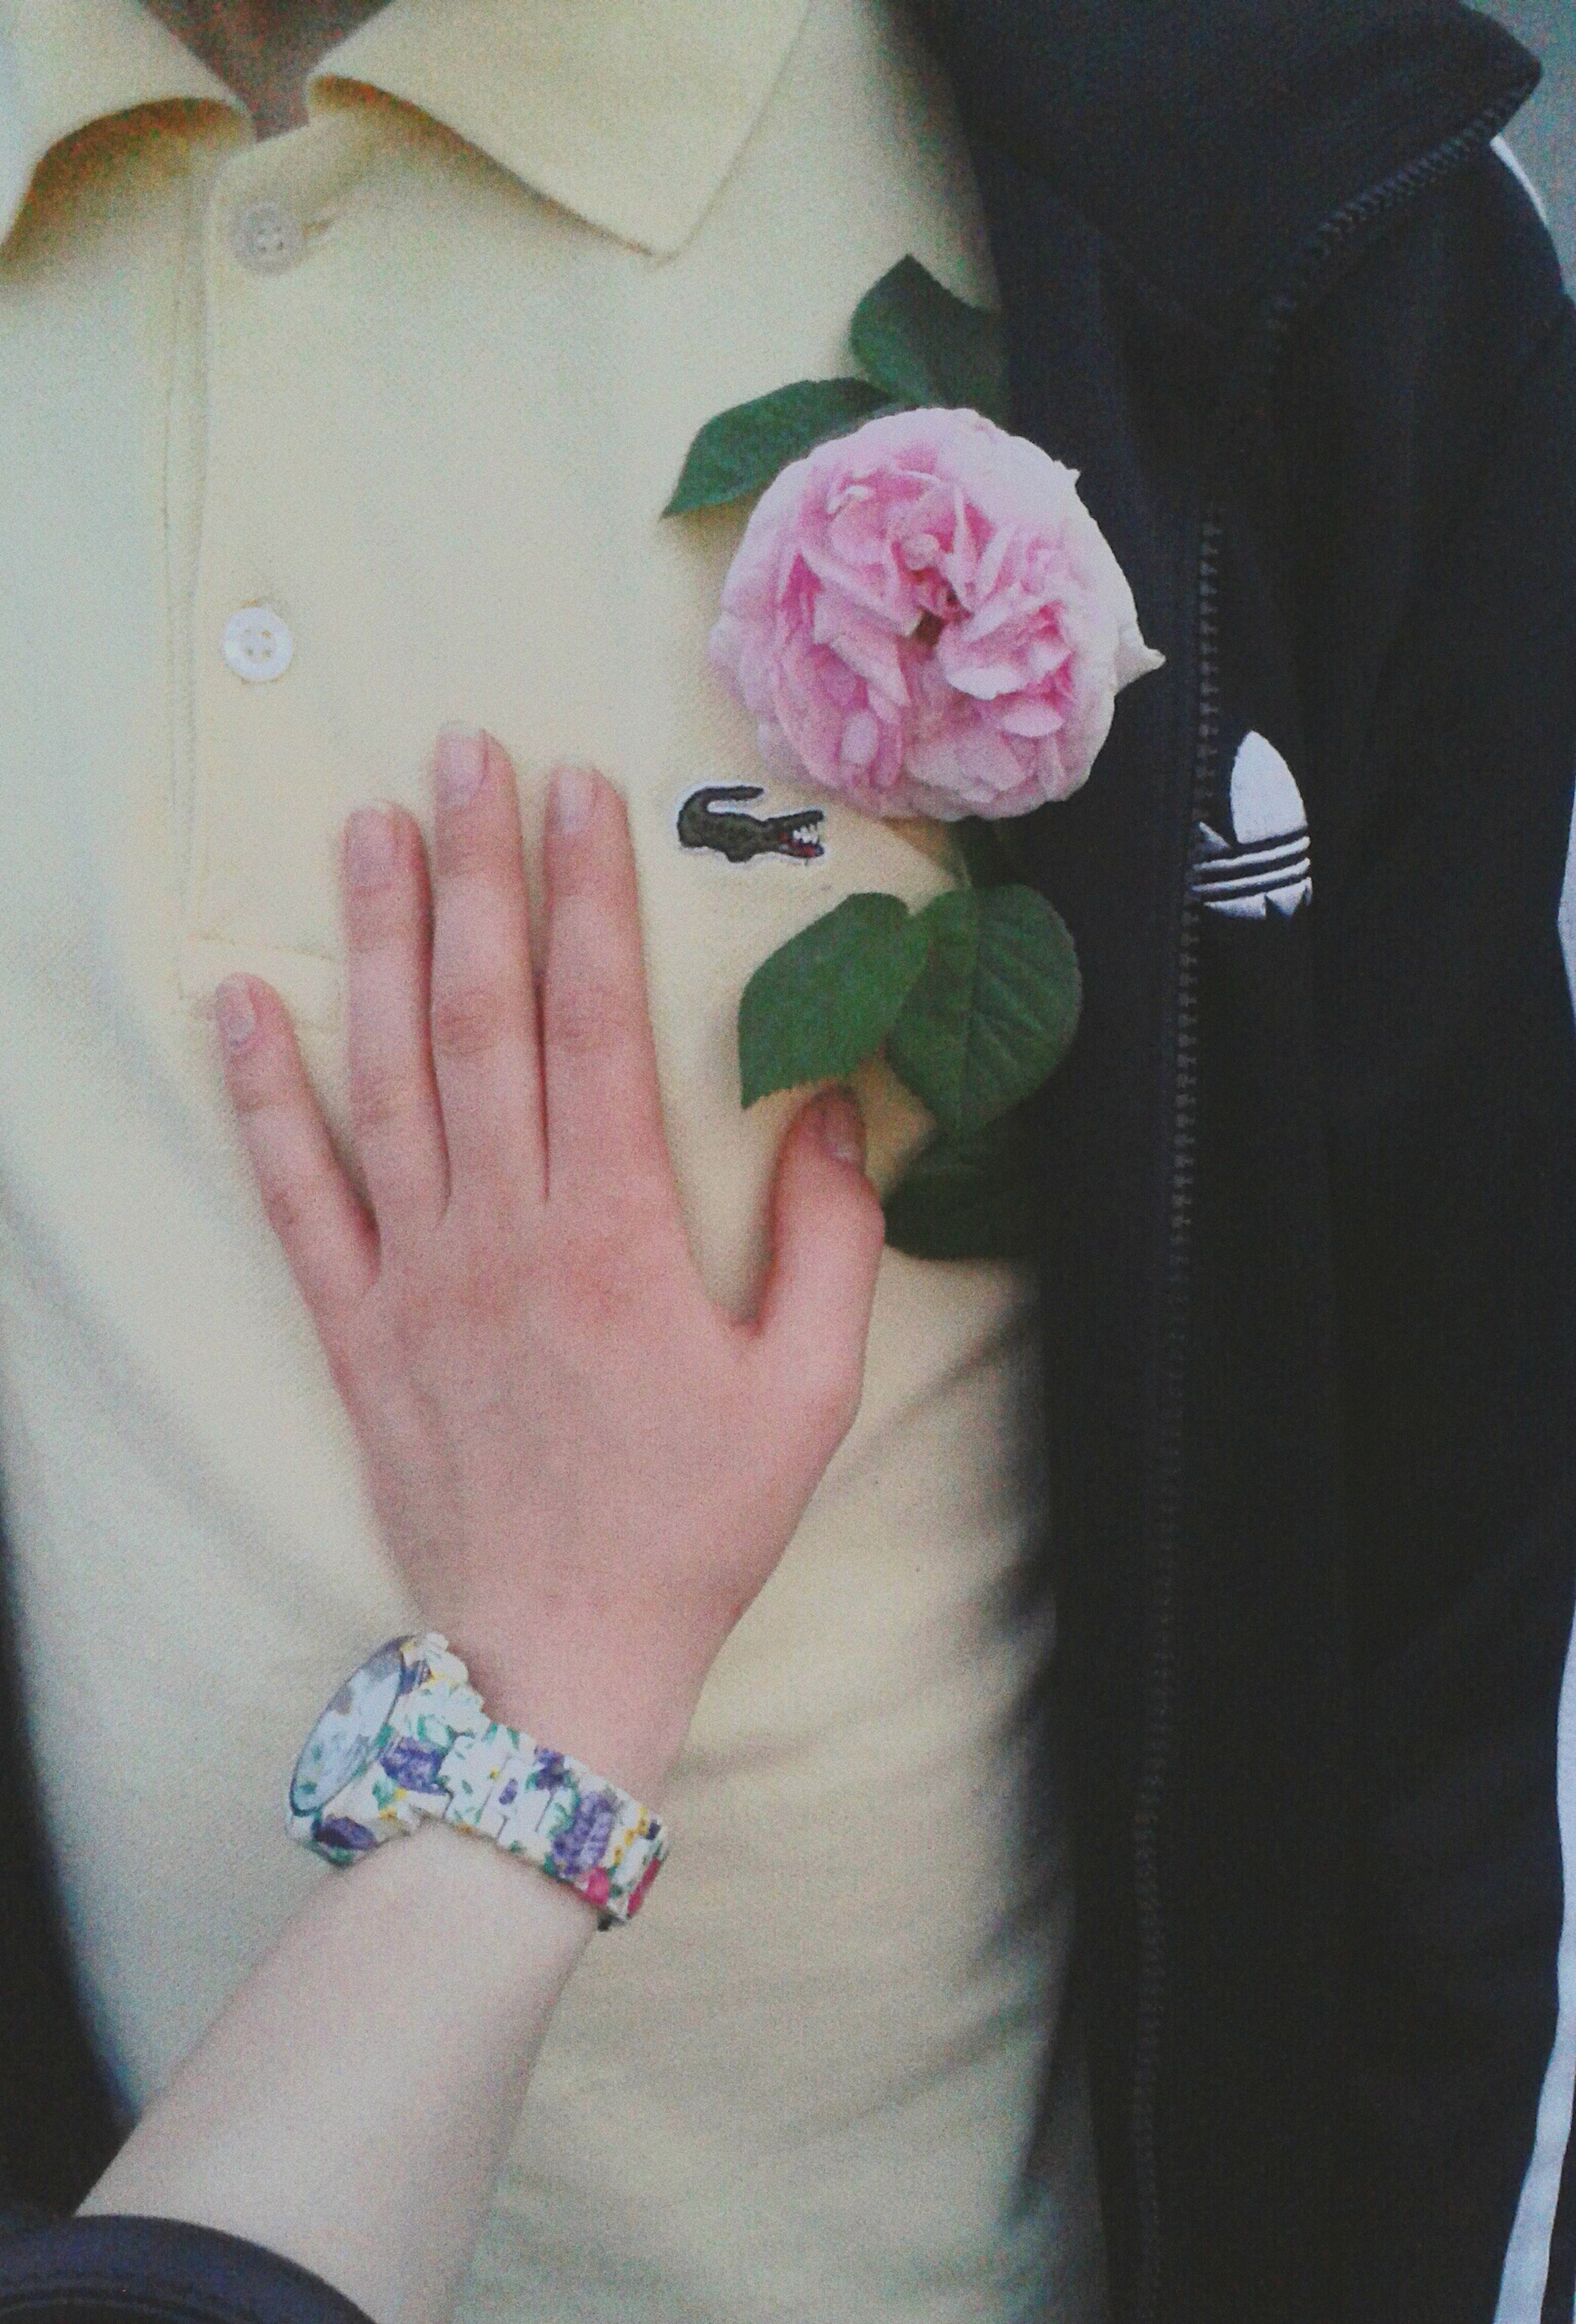 person, flower, holding, indoors, lifestyles, part of, fragility, freshness, petal, personal perspective, leisure activity, flower head, cropped, human finger, pink color, close-up